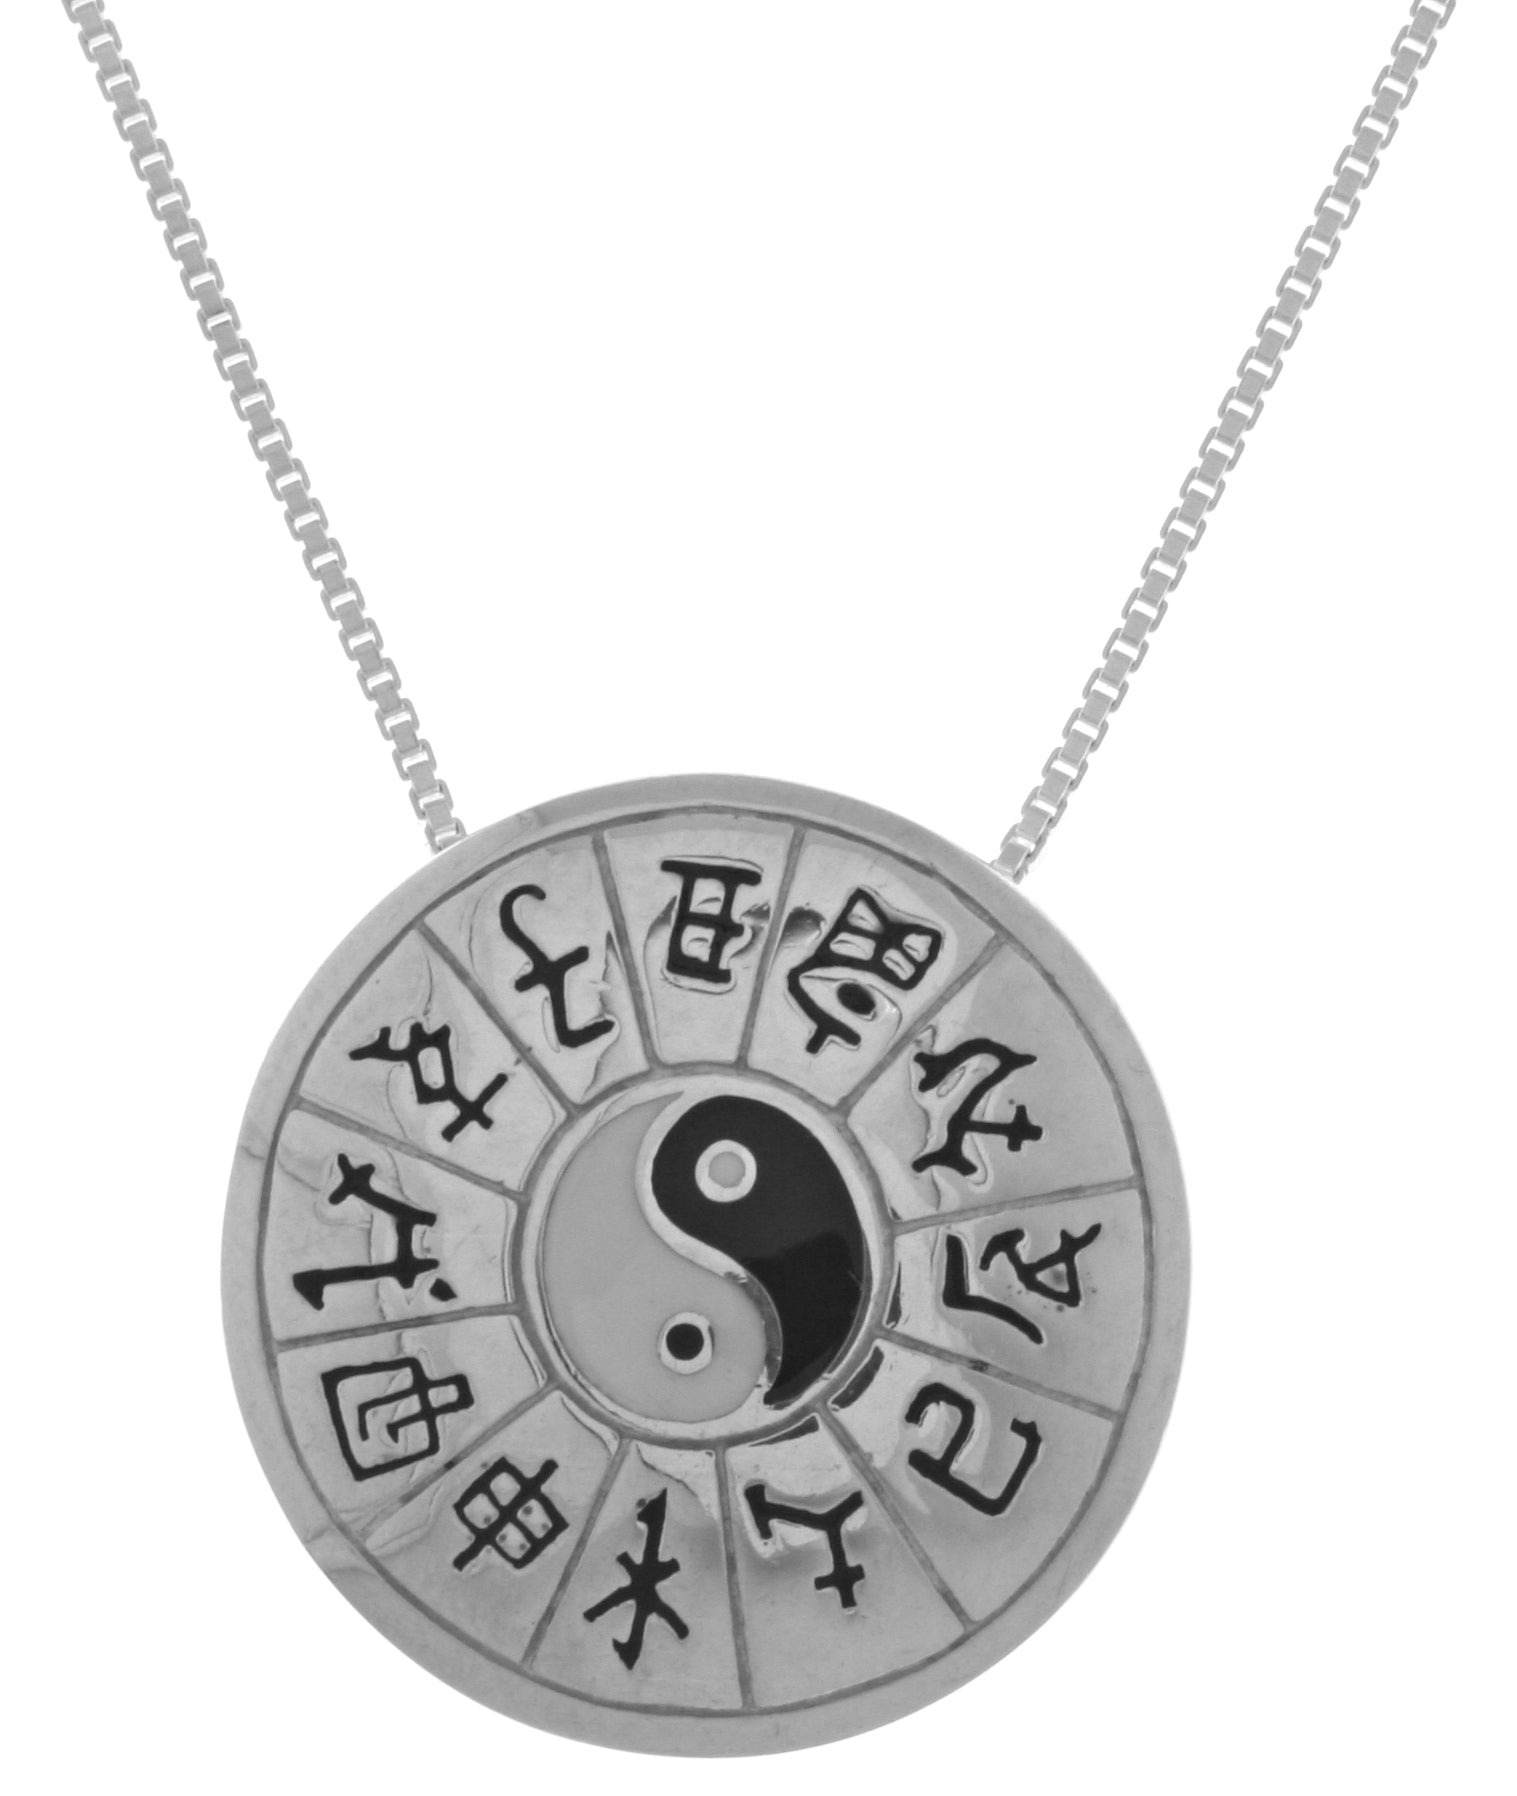 Jewelry Trends Sterling Silver Yin Yang Chinese Zodiac Pendant on 18 Inch Box Chain Necklace